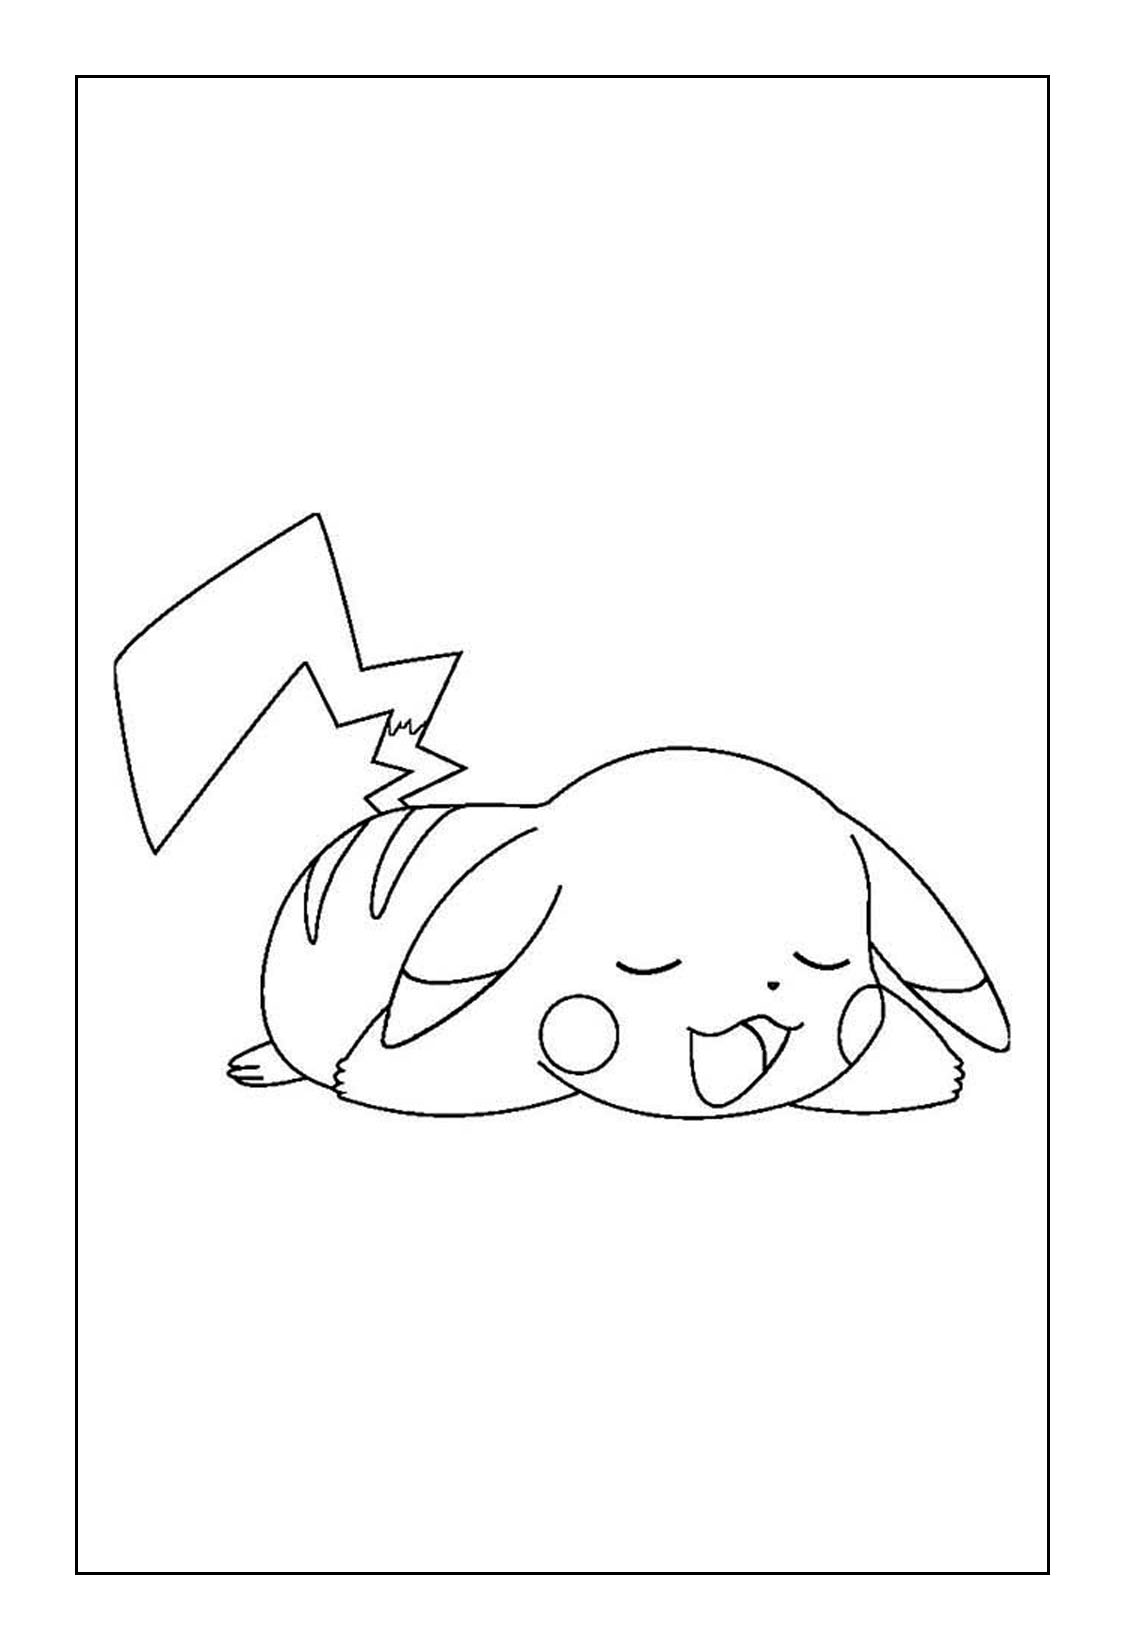 detective pikachu pokemon coloring pages